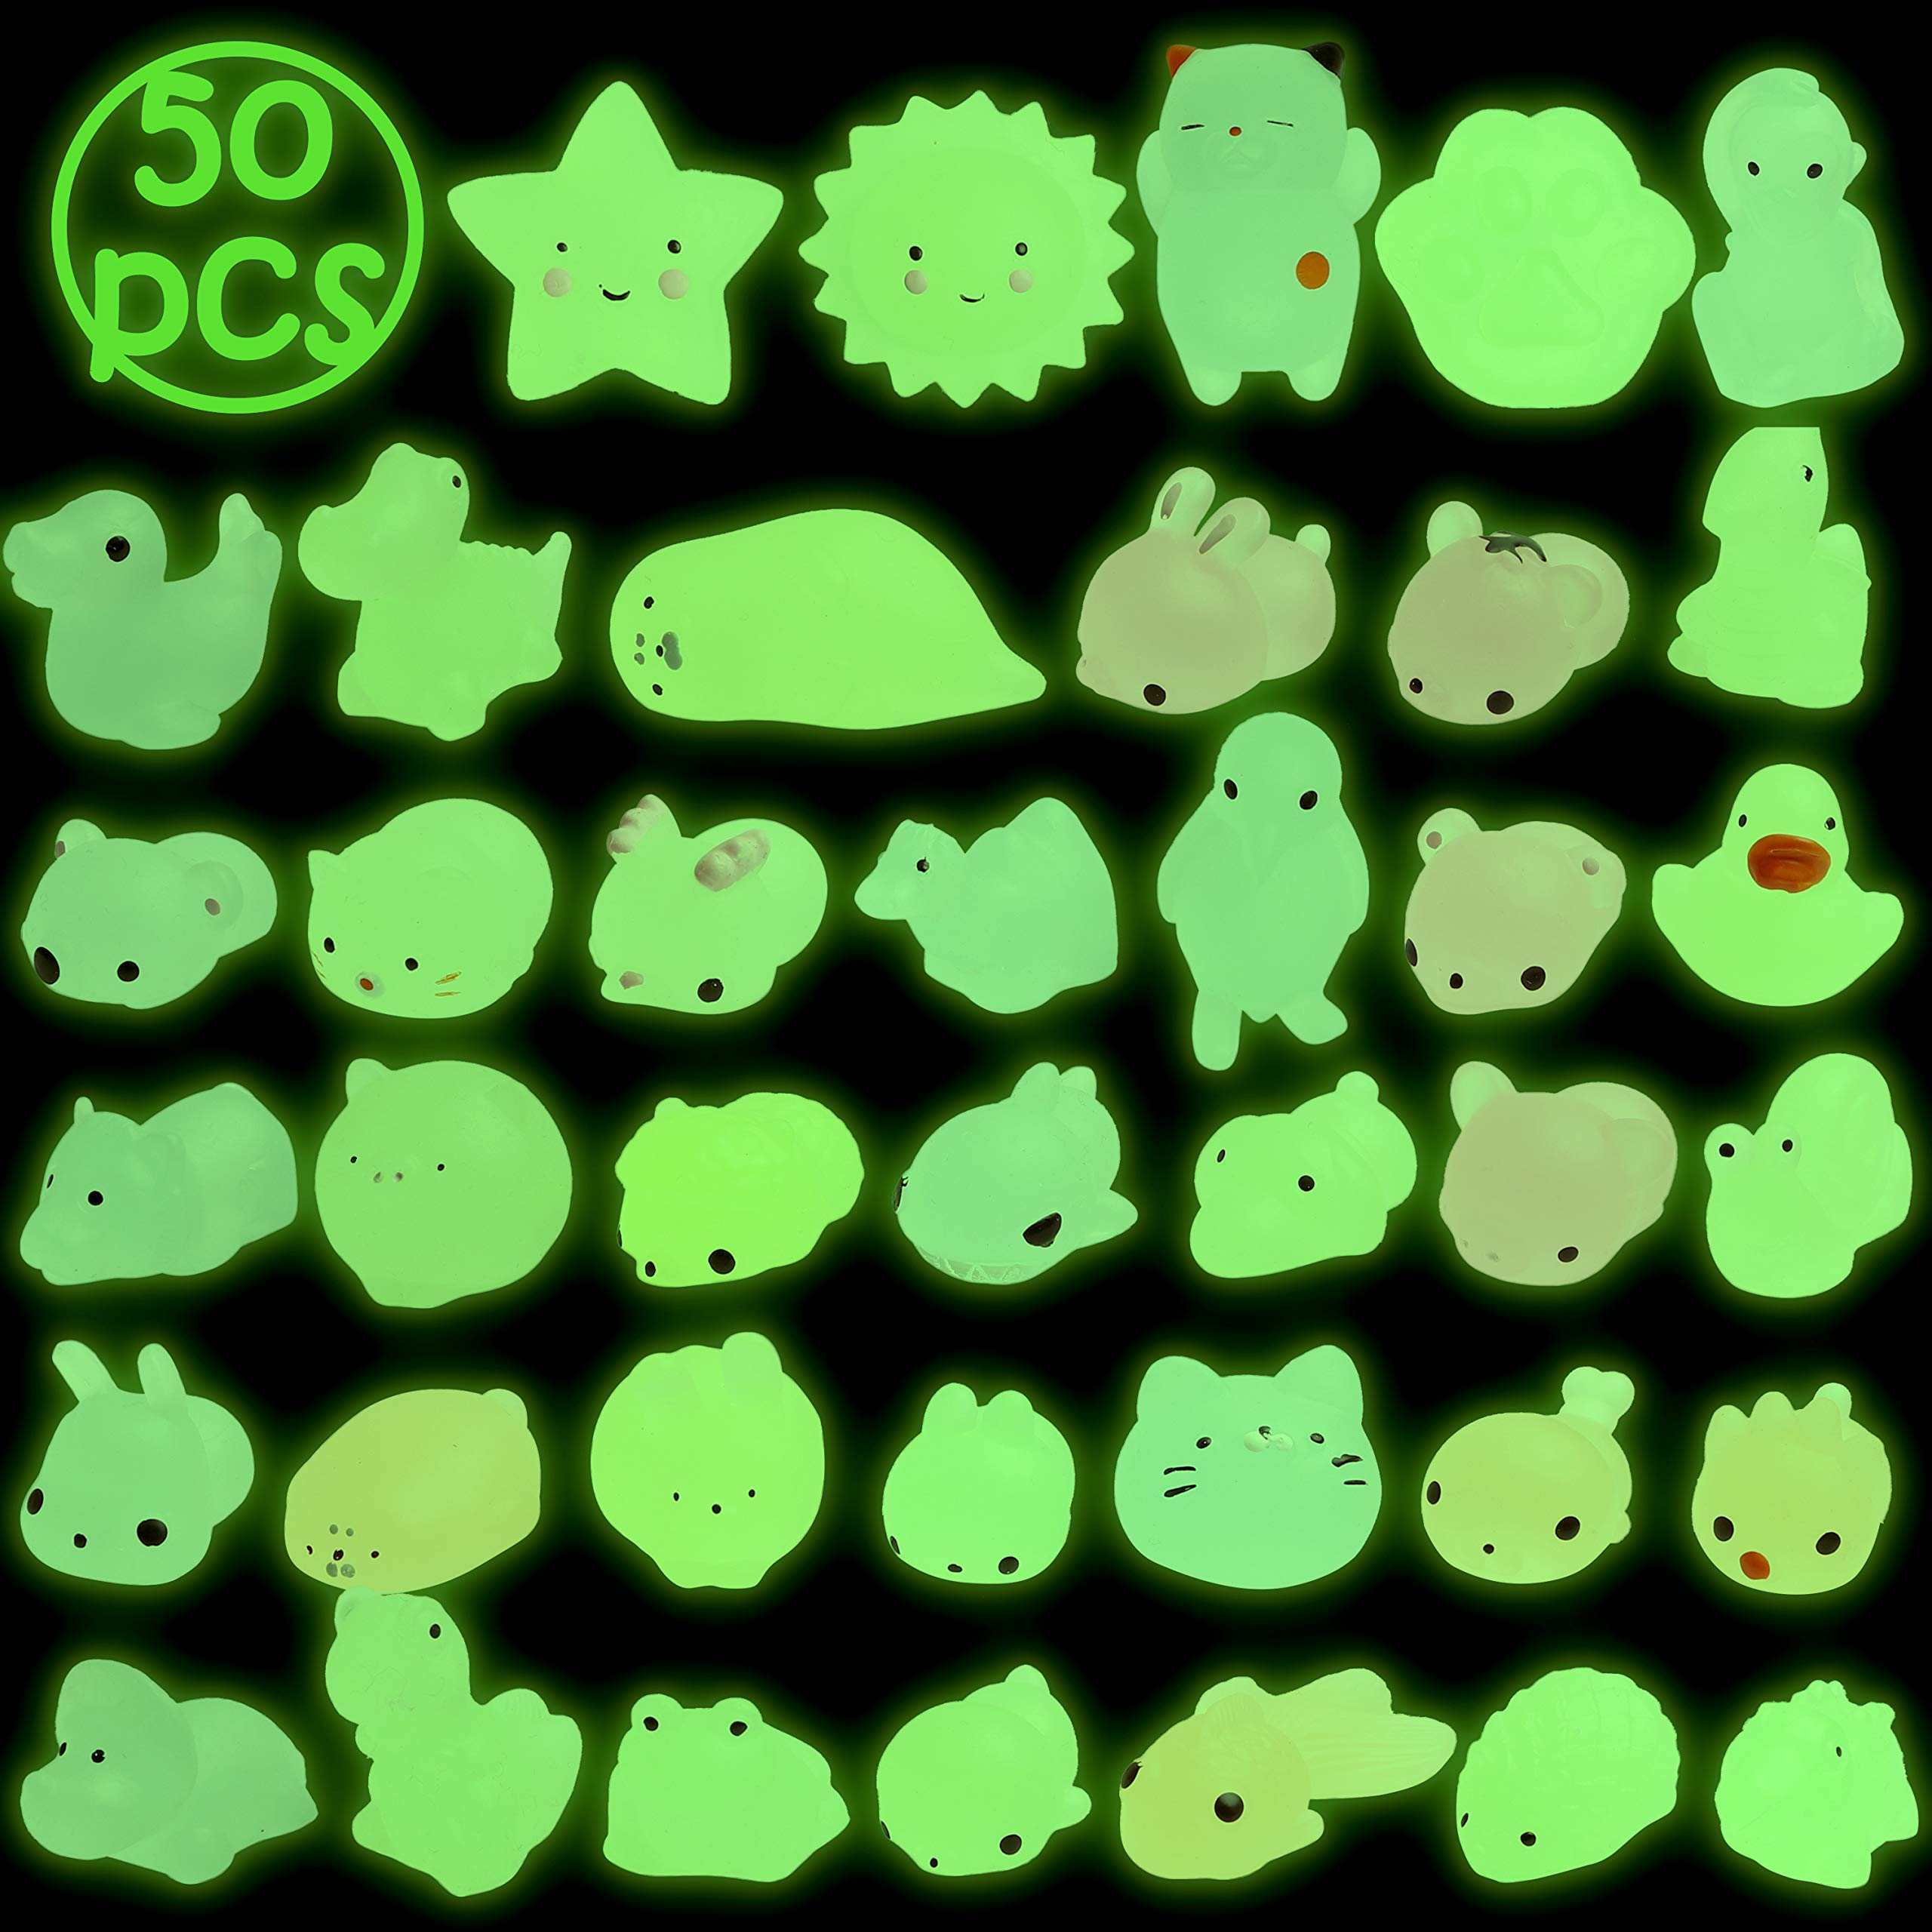 BeYumi Glow in The Dark Mochi Squishy Toys, 50 Pcs Mini Animal Squeeze Stress Stretchy Toys Hand Toy Healing Stress Reliever for Kids & Adults